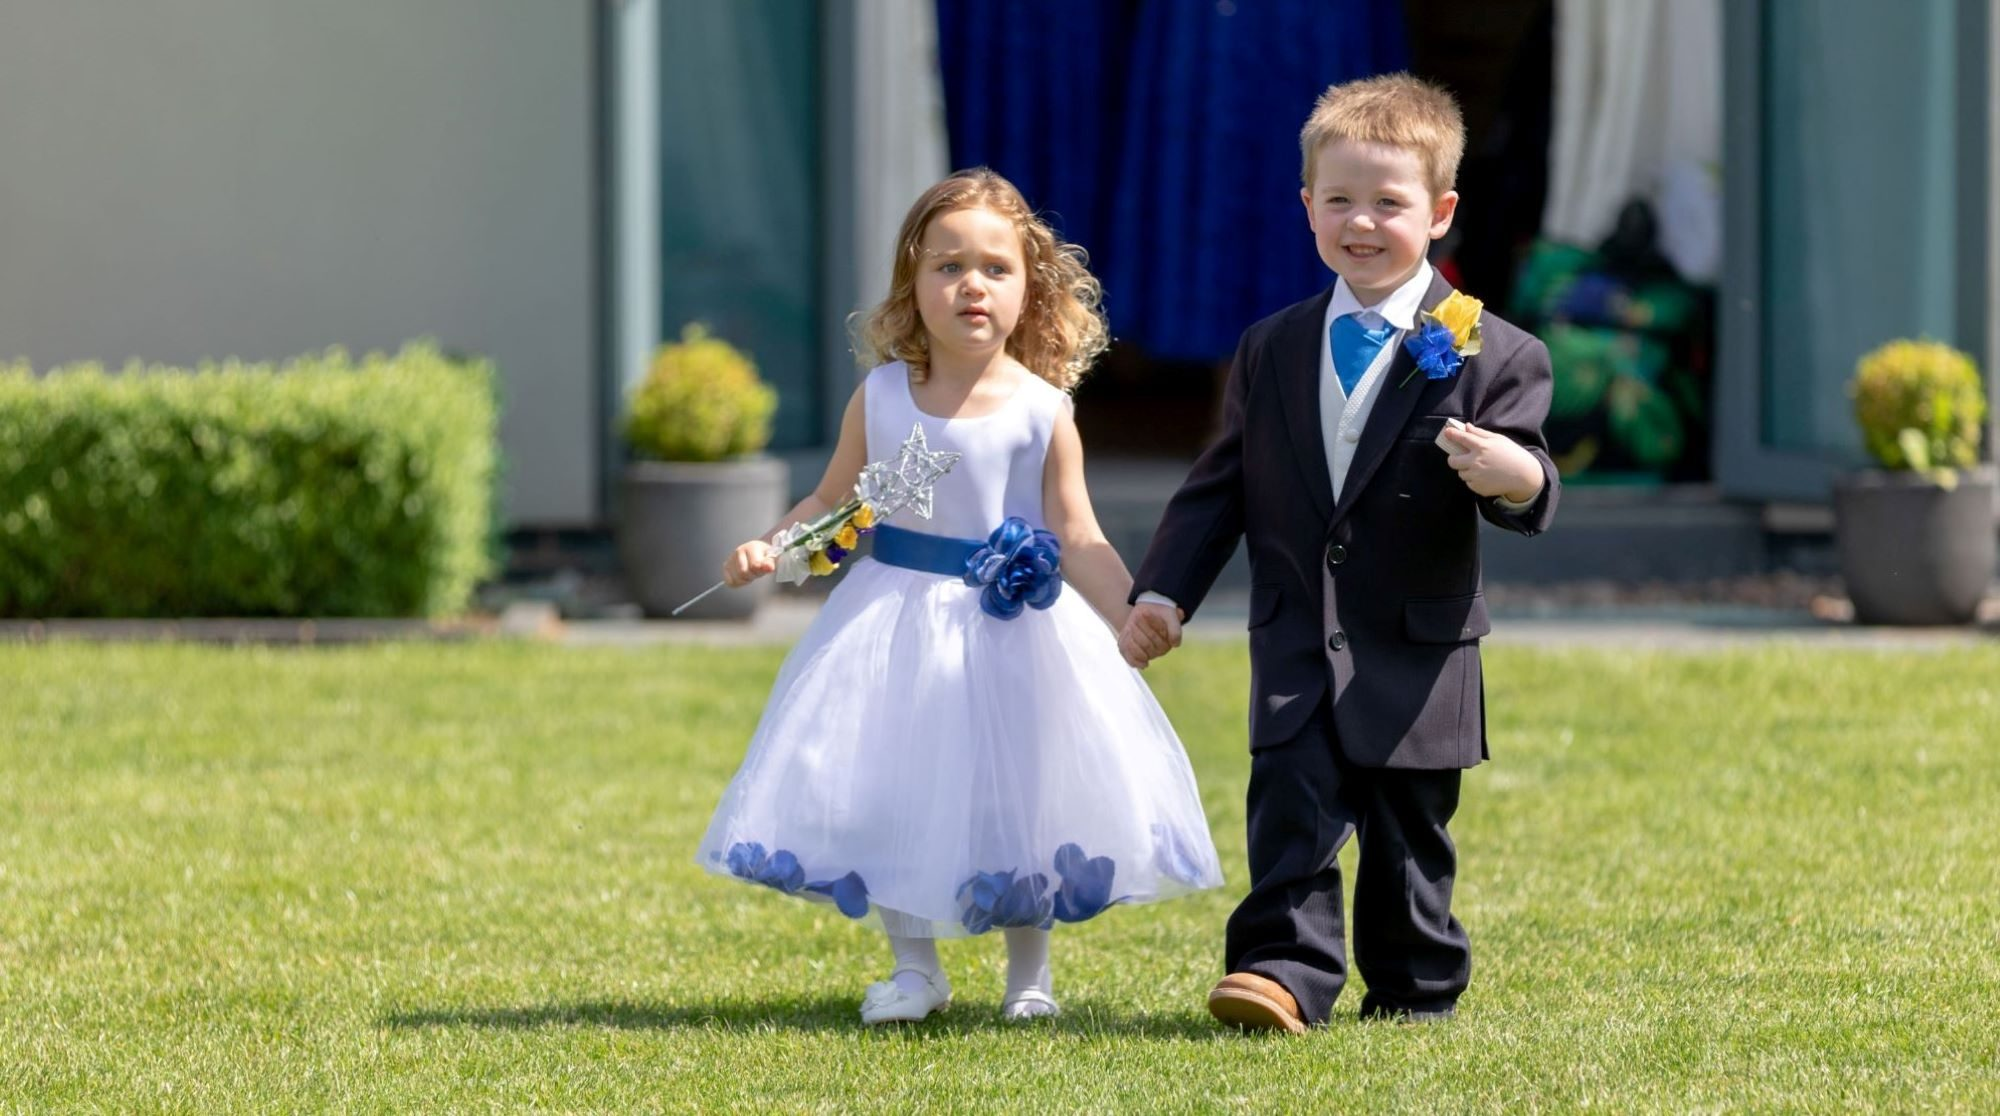 flowergirl pageboy hold hands manor hill house bromsgrove worcestershire oxfordshire wedding photography